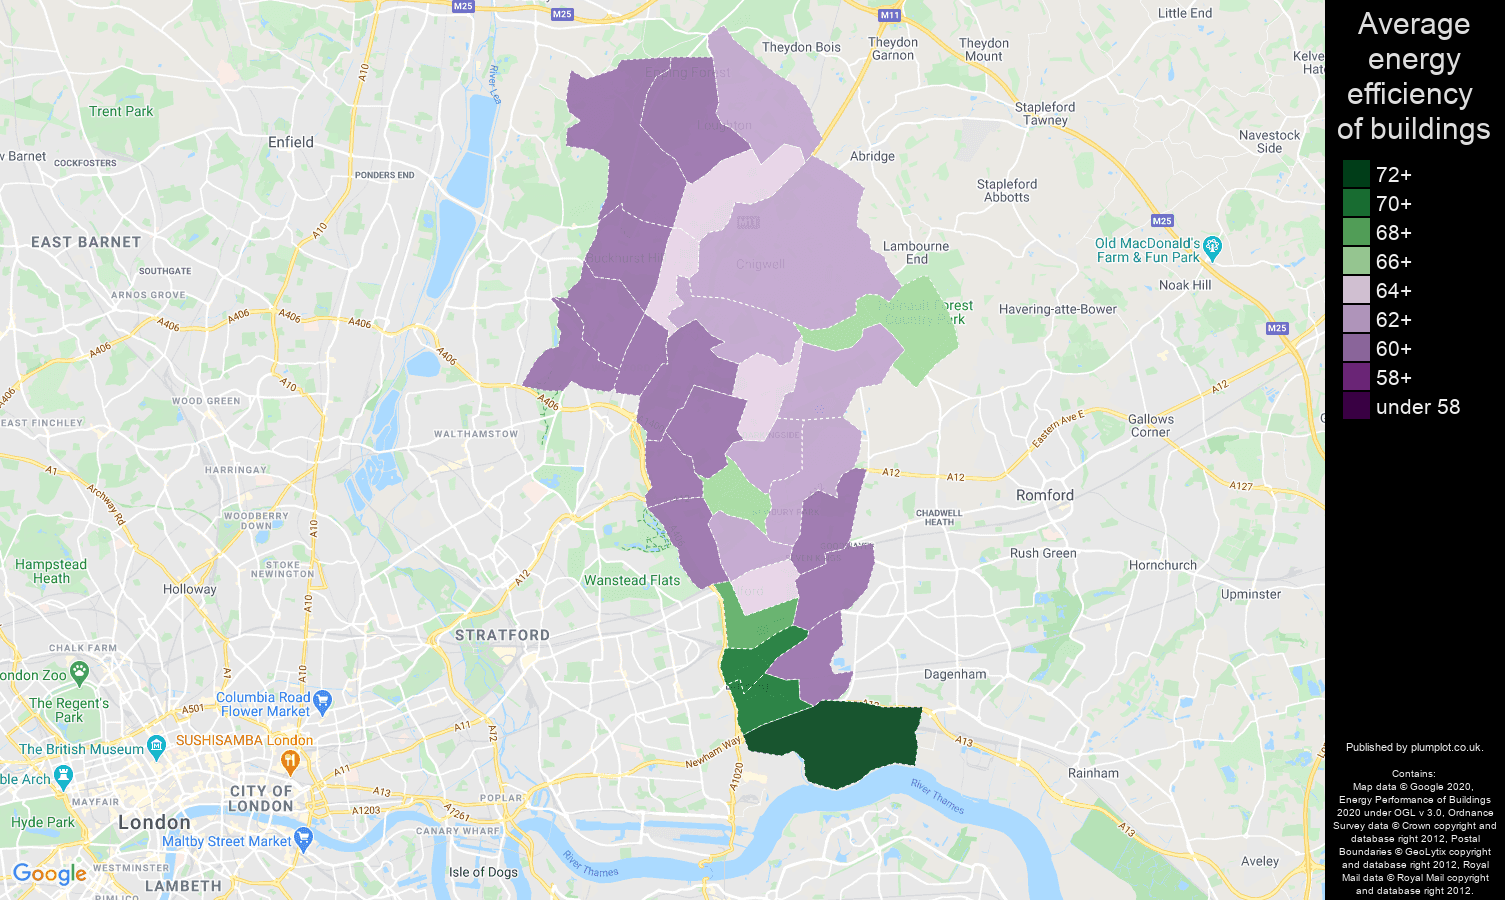 Ilford map of energy efficiency of properties